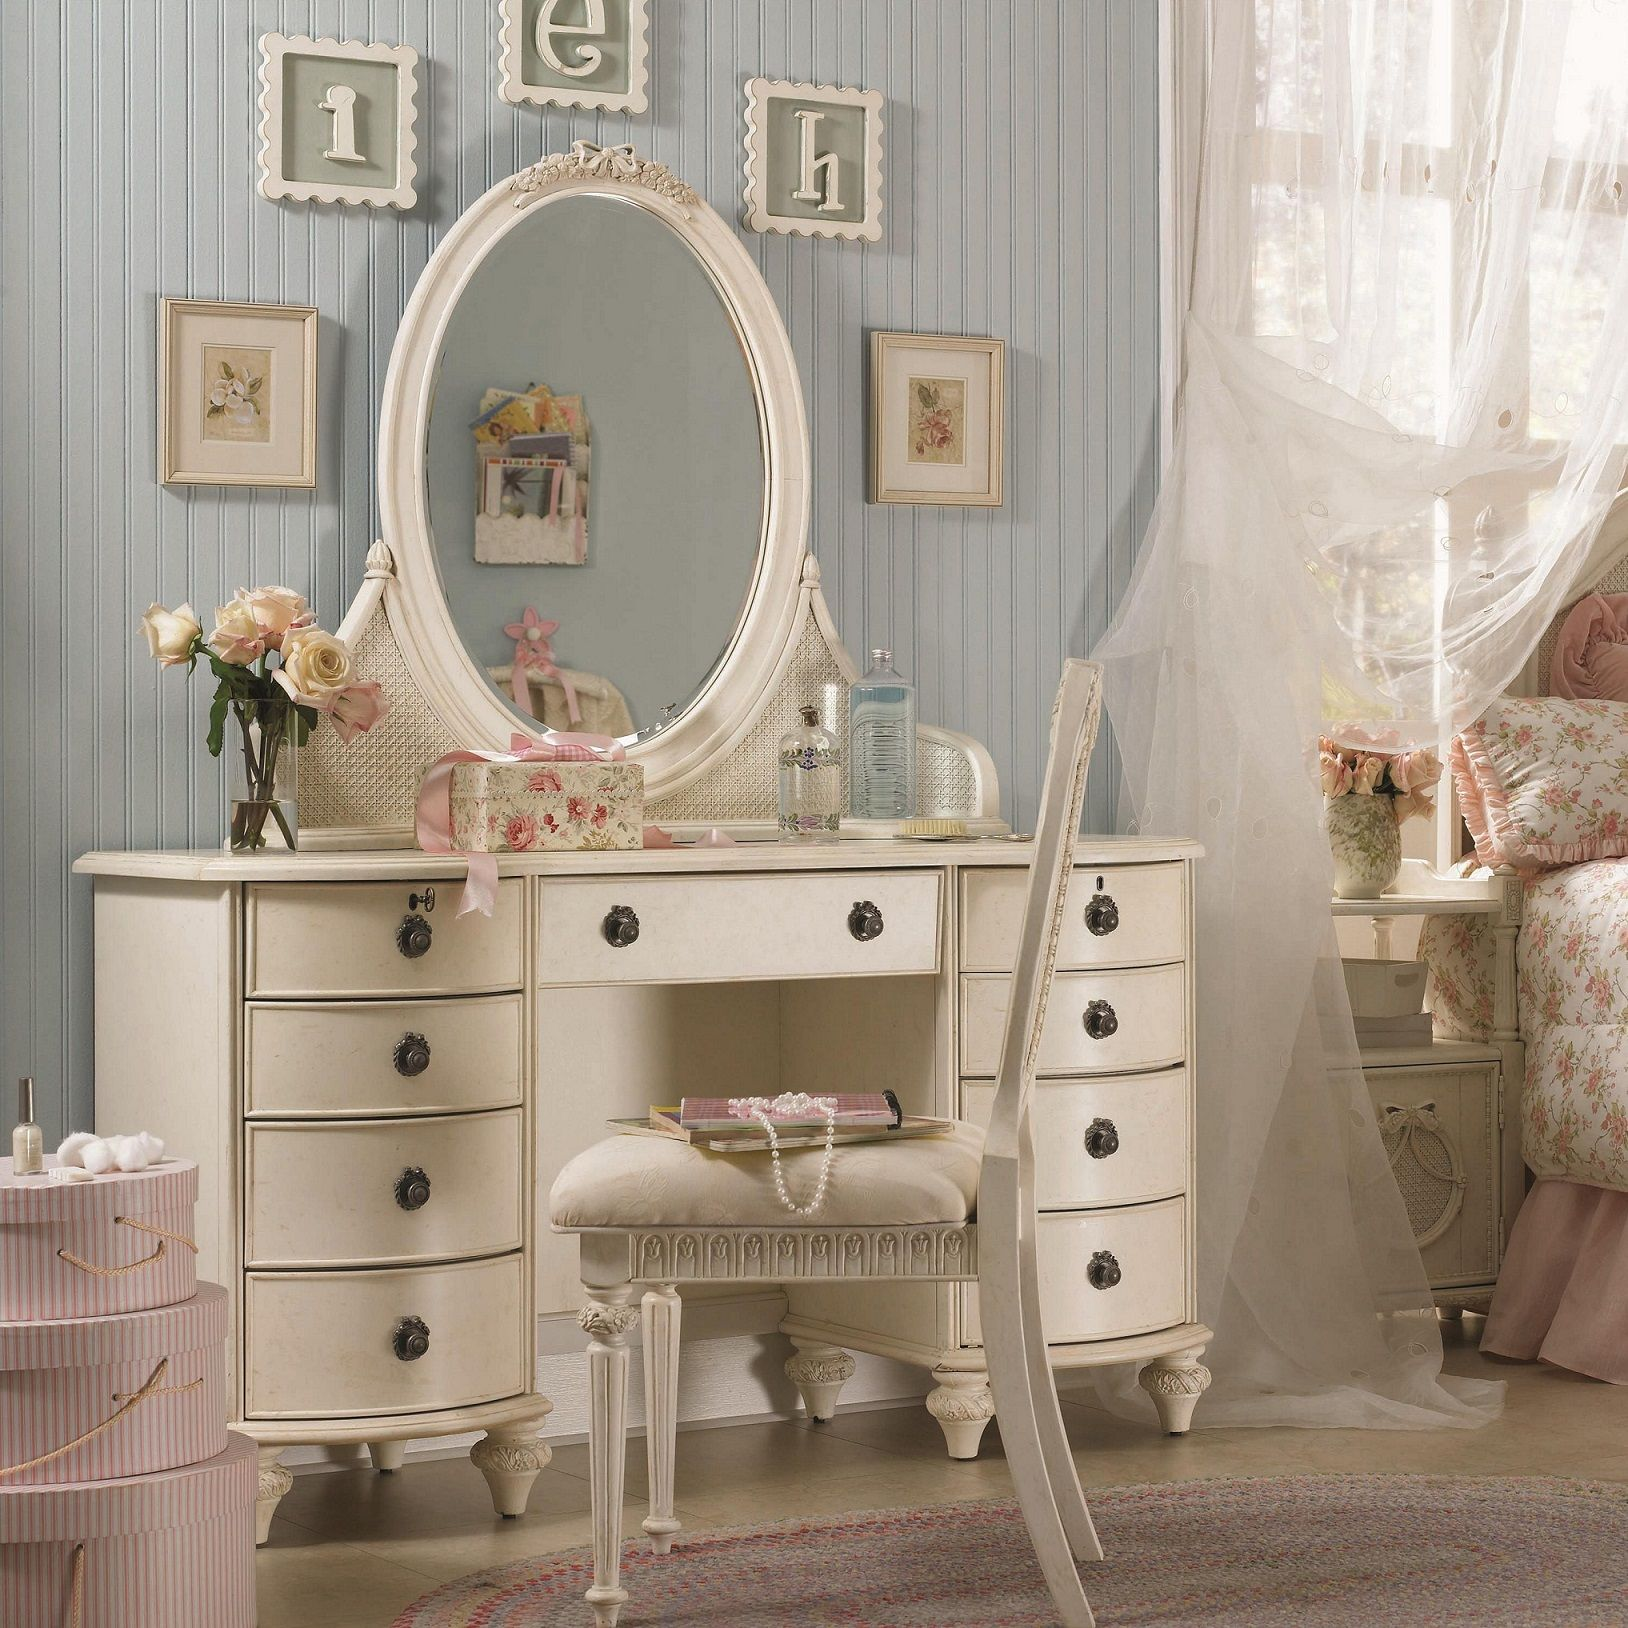 Vintage Makeup Vanity With Lights. Vintage Makeup Vanity Table Ideas  Make up table Pinterest